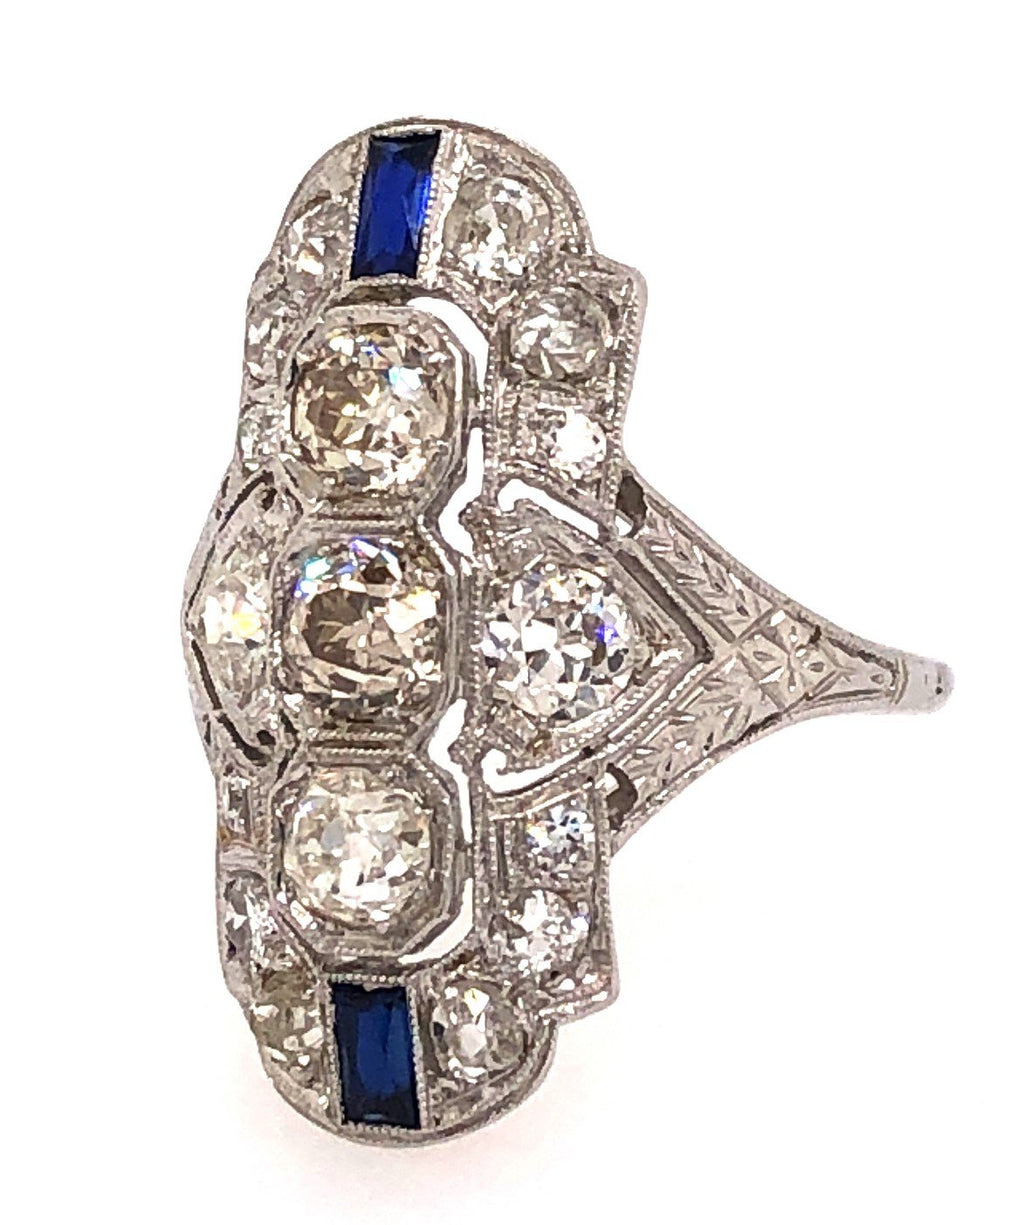 Circa 1920's Diamond and Sapphire Ring